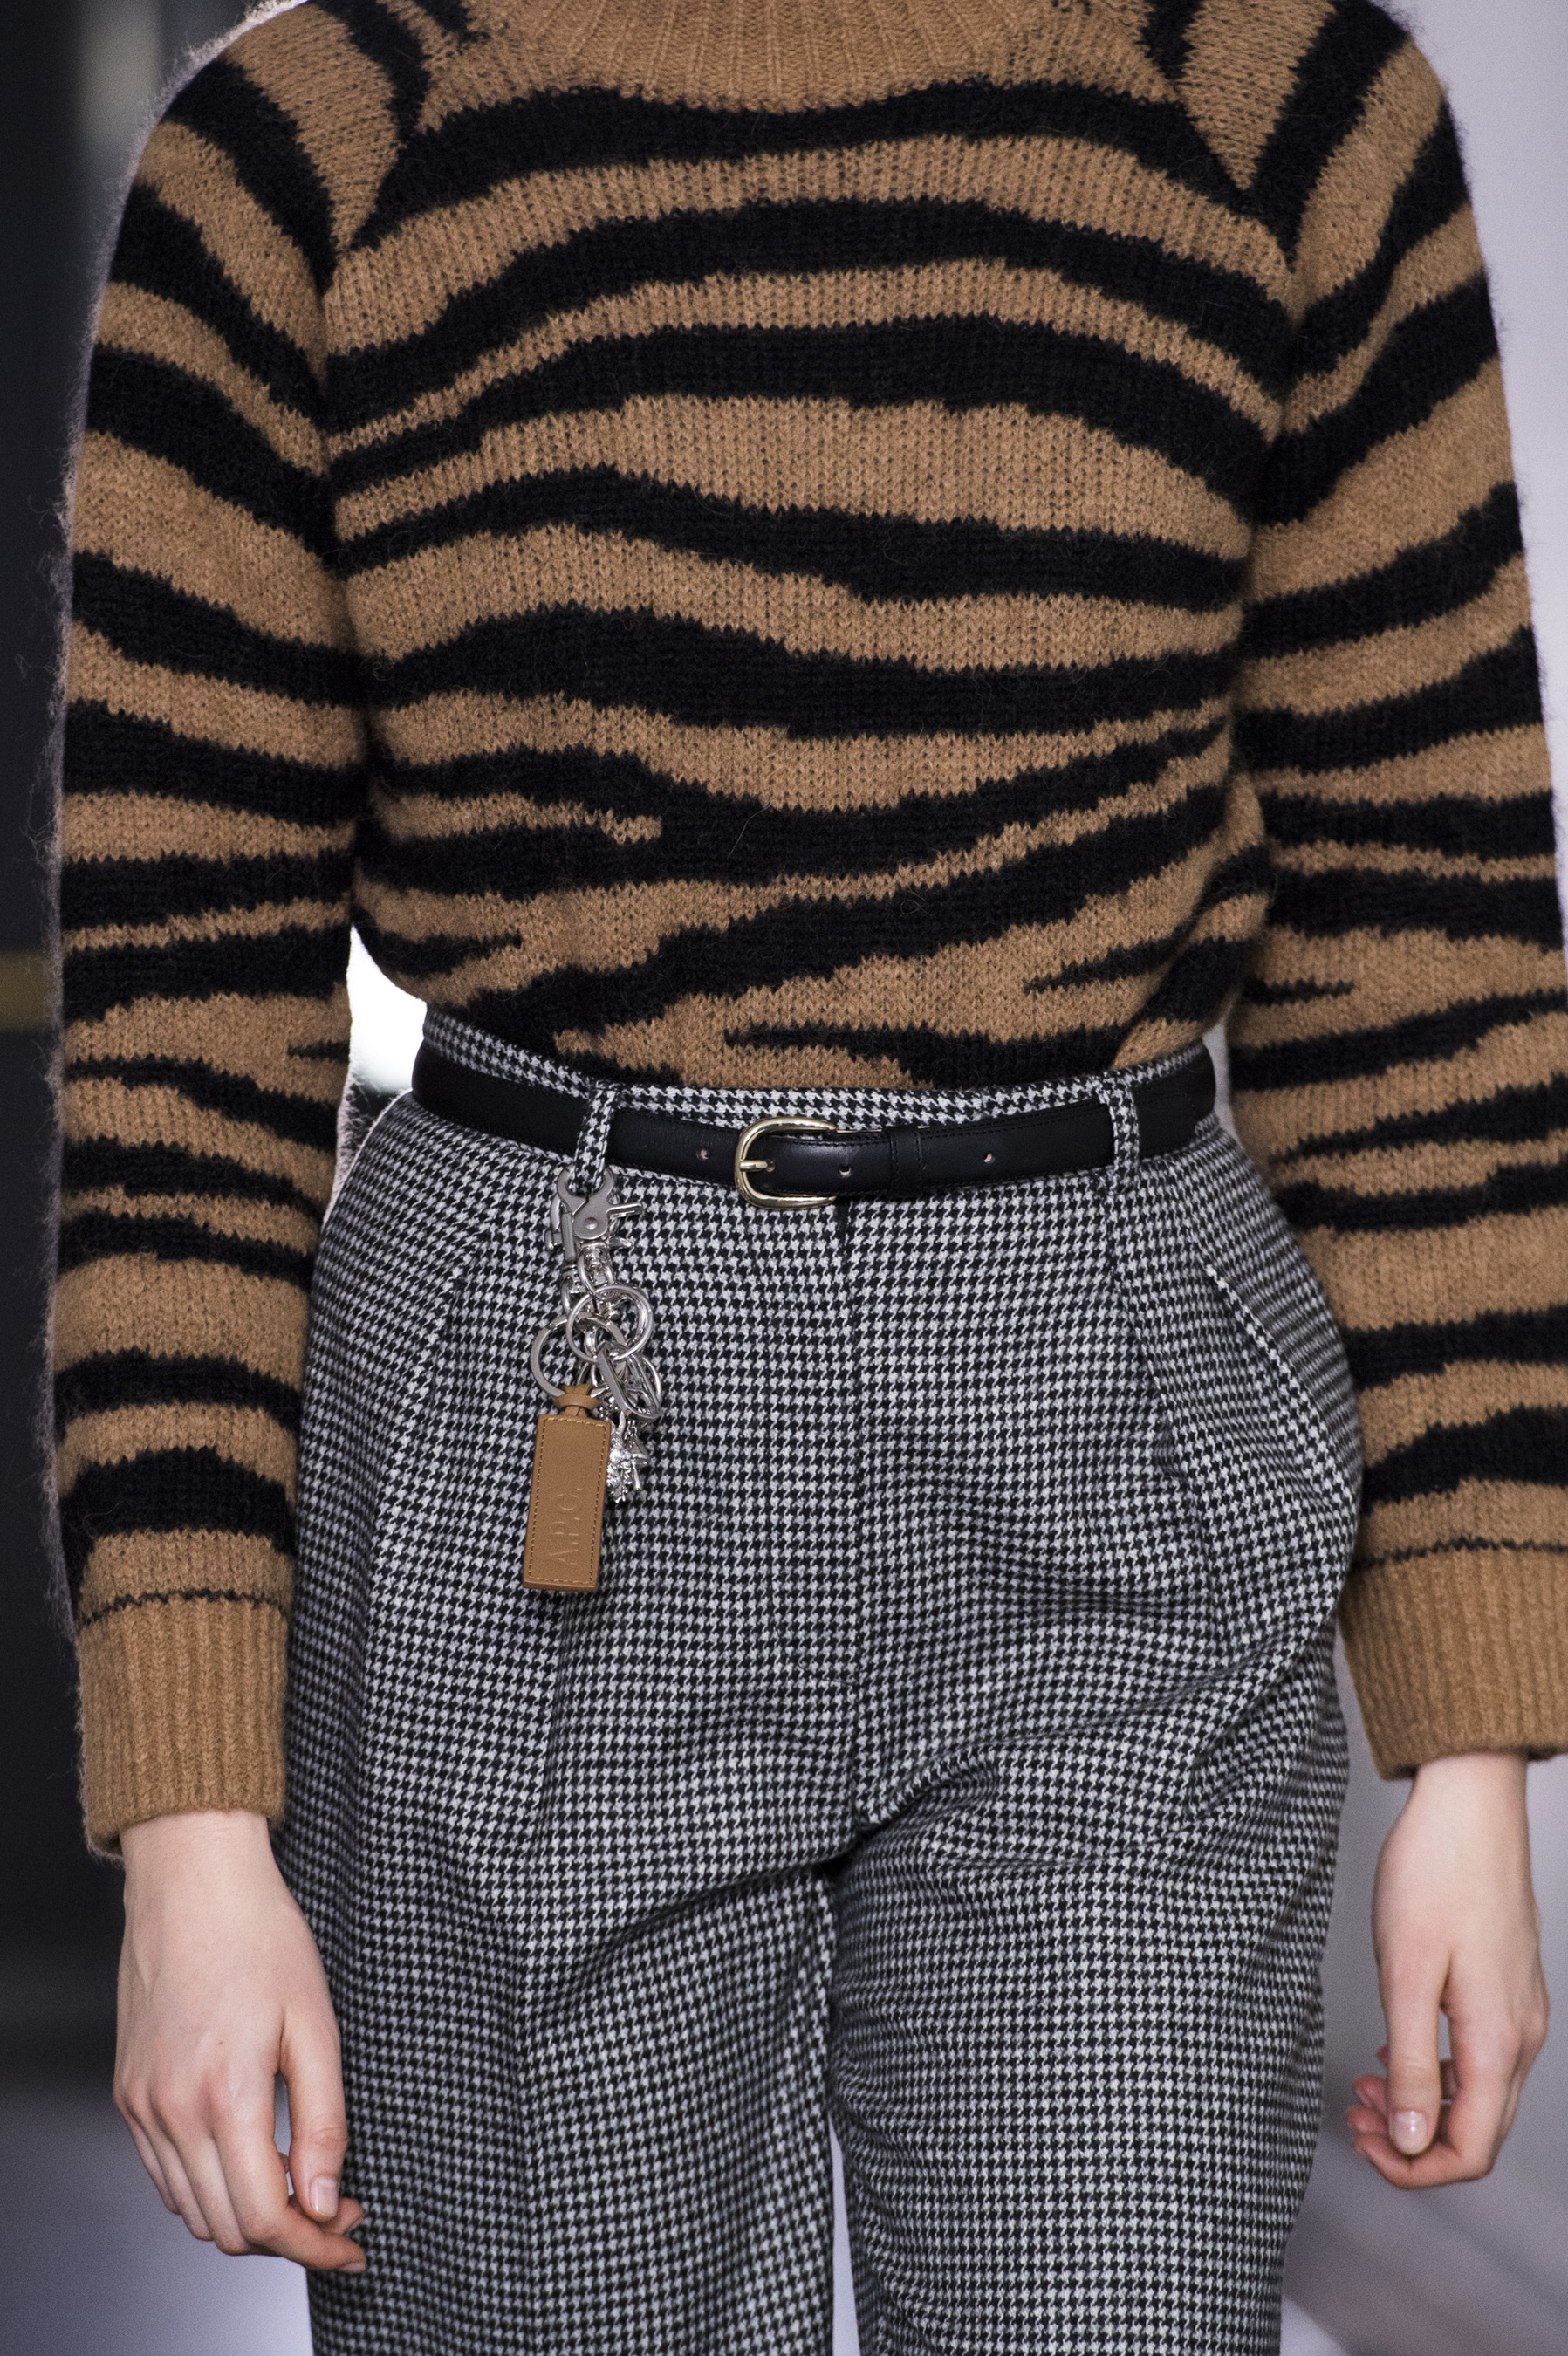 A.p.c Fall 2019 Fashion Show Details